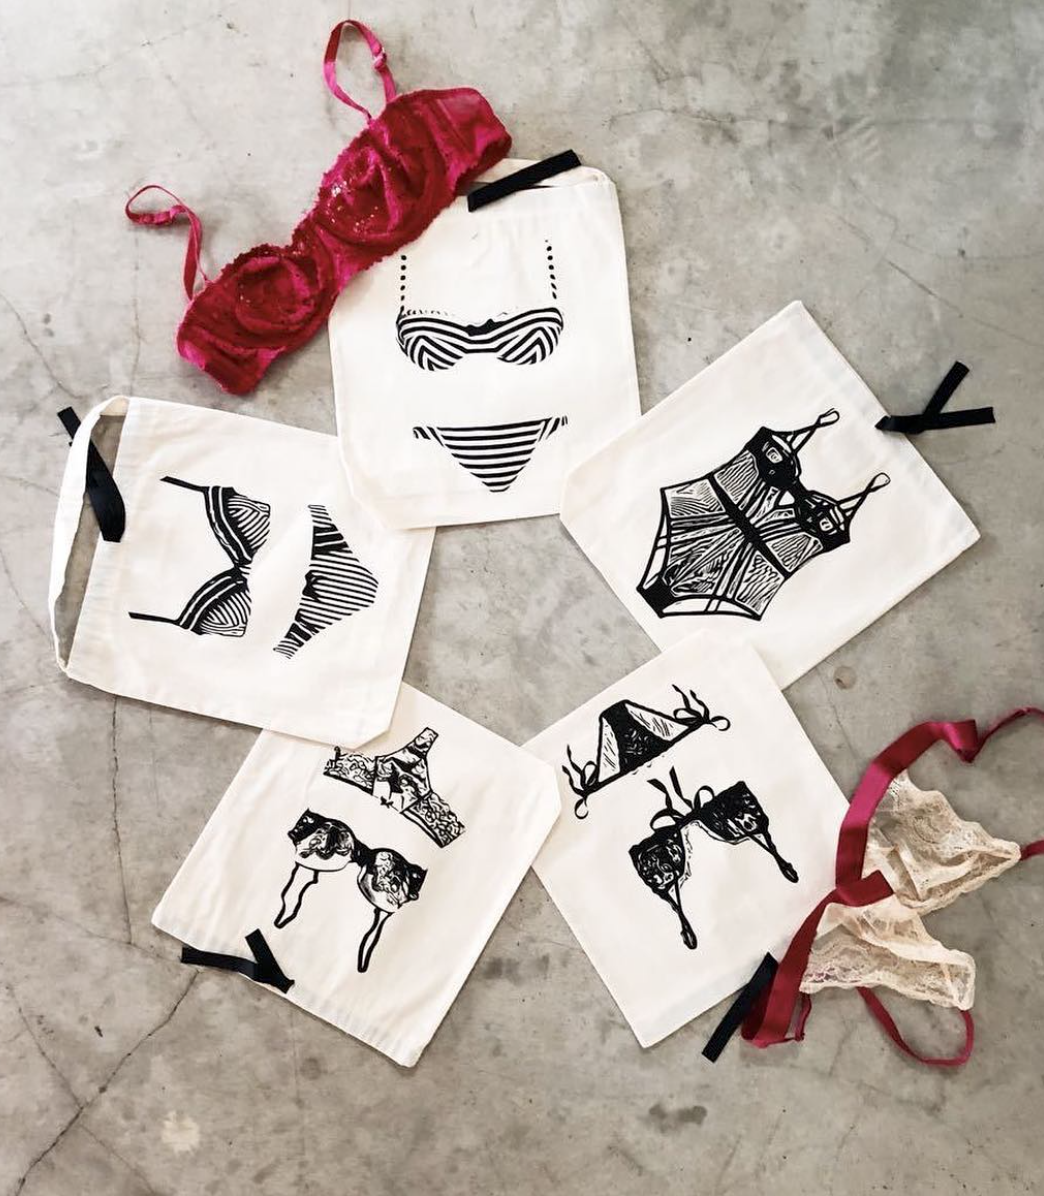 LINGERIE BAGS - Keep your delicates protected with a lingerie bag